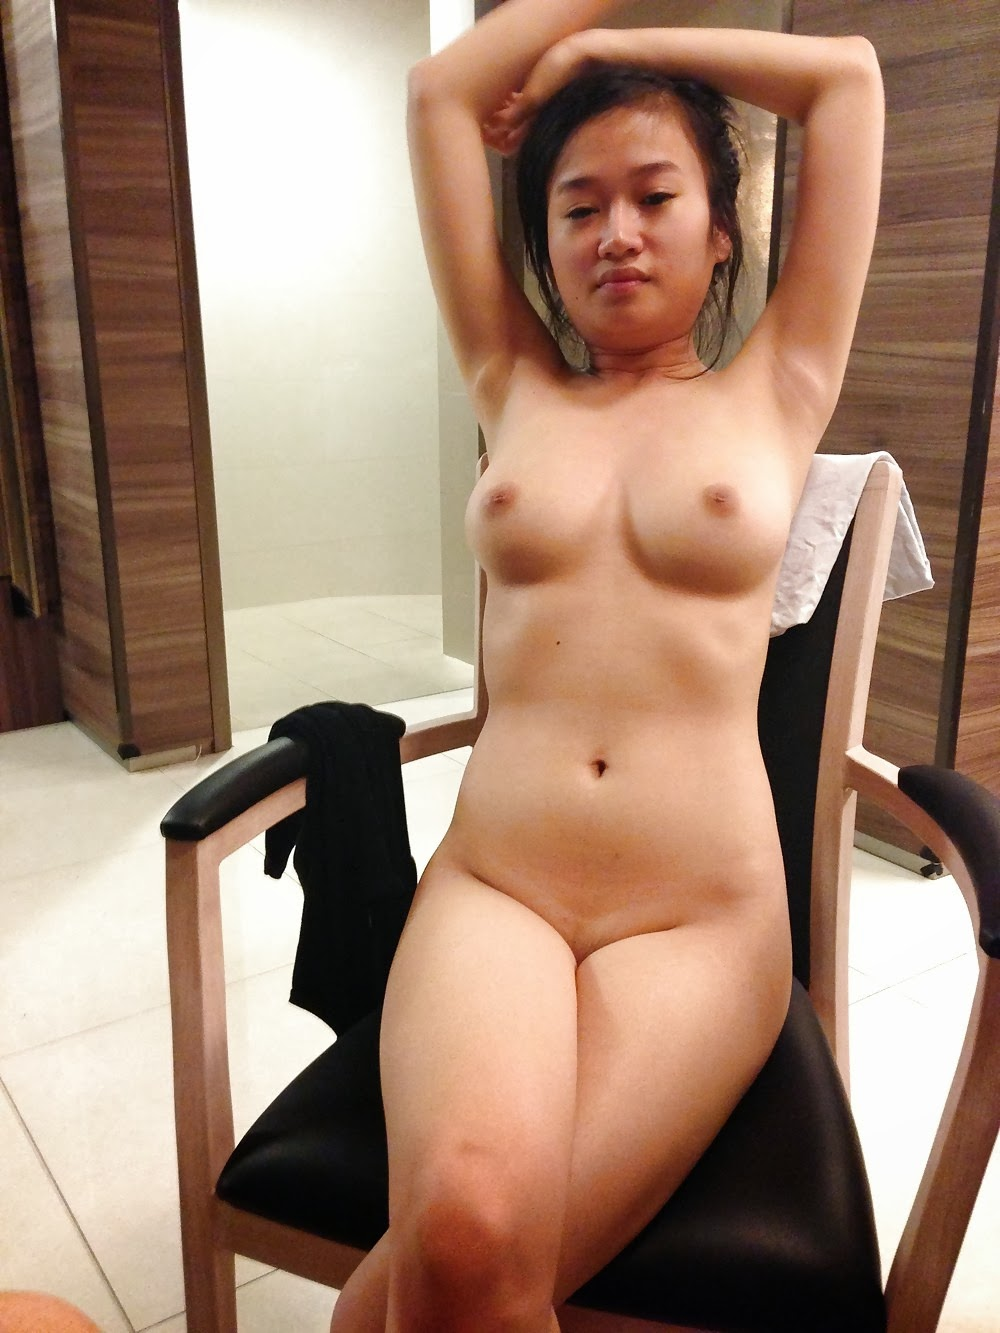 Pinay in singapore nude picture but not